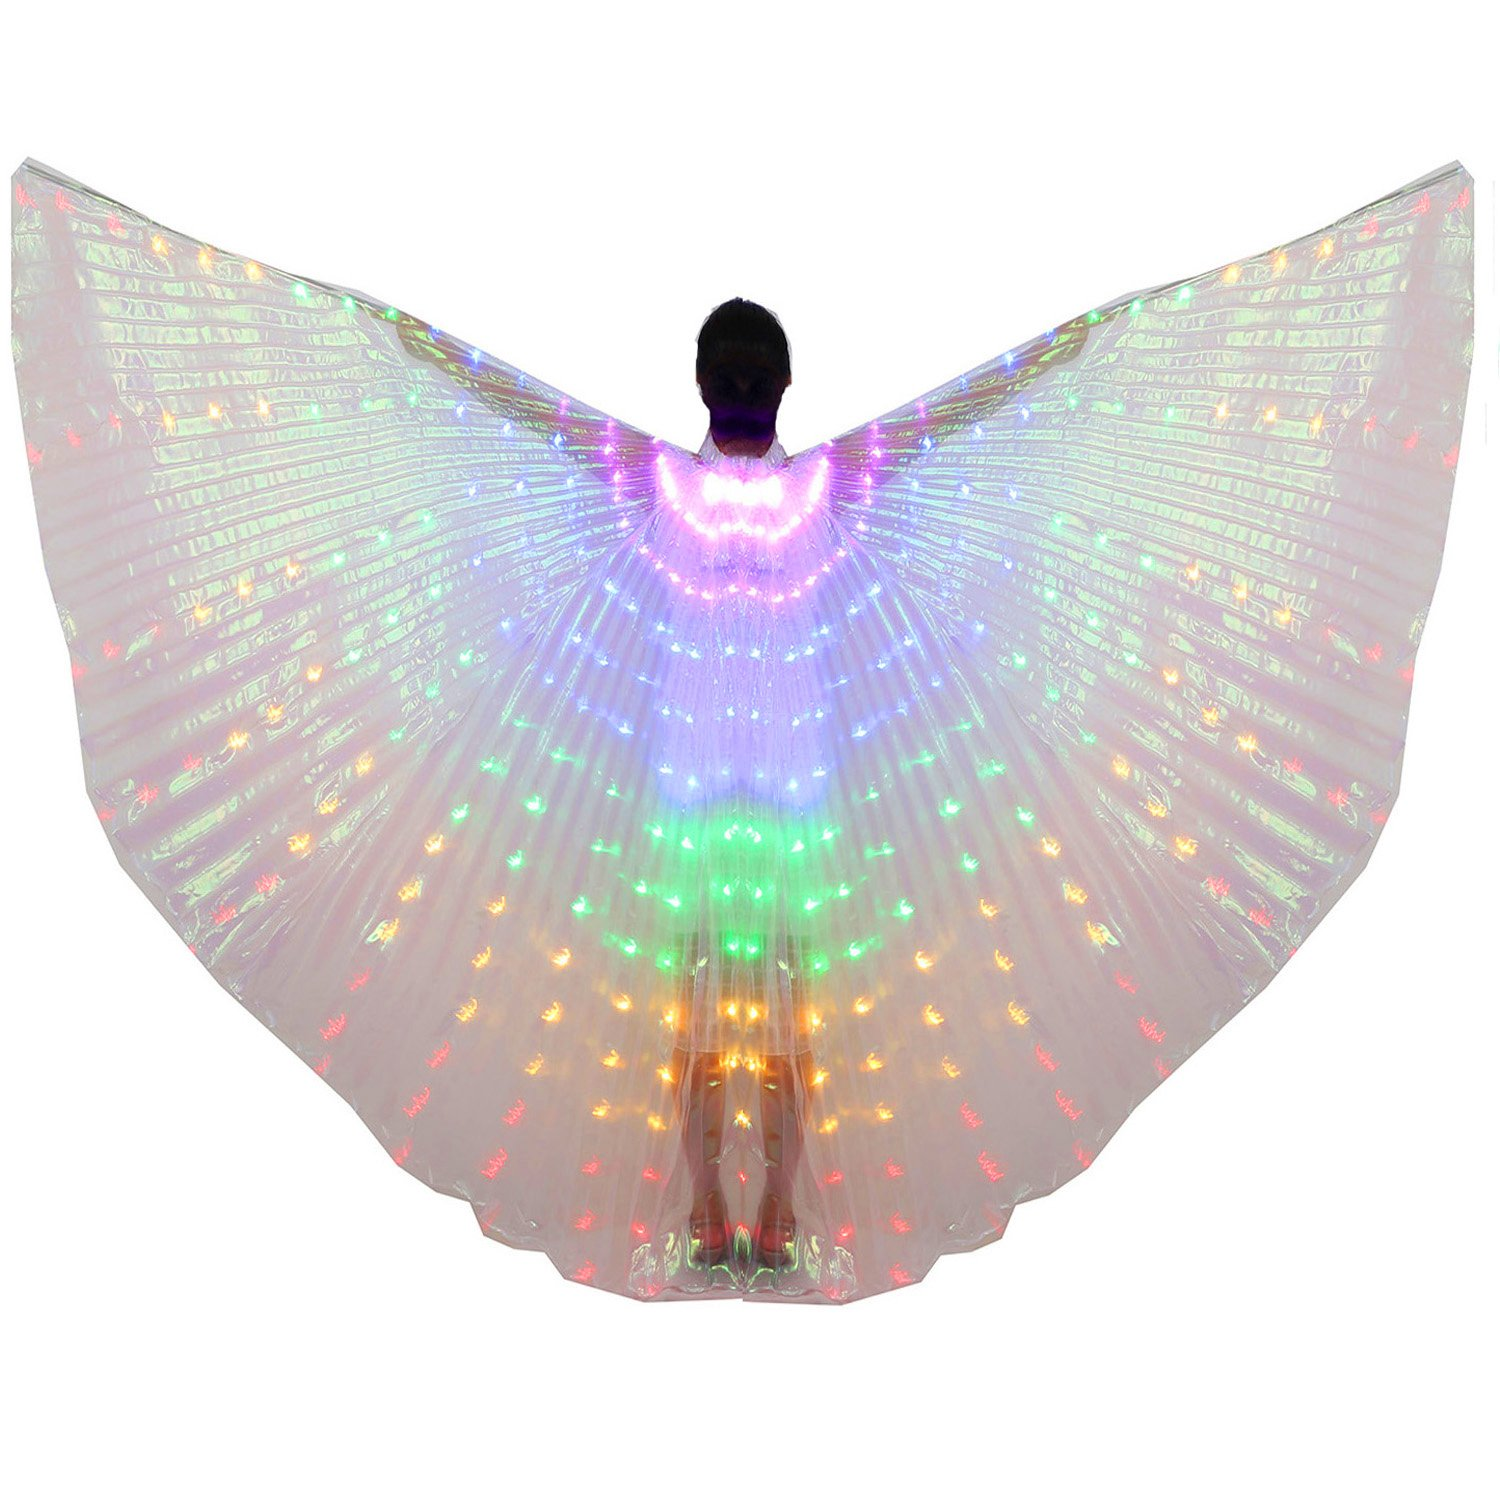 Dance Fairy Belly Dance LED Colorful Isis Wings with Stick(Purple-Blue-Green-Yellow-Red) by Dance Fairy